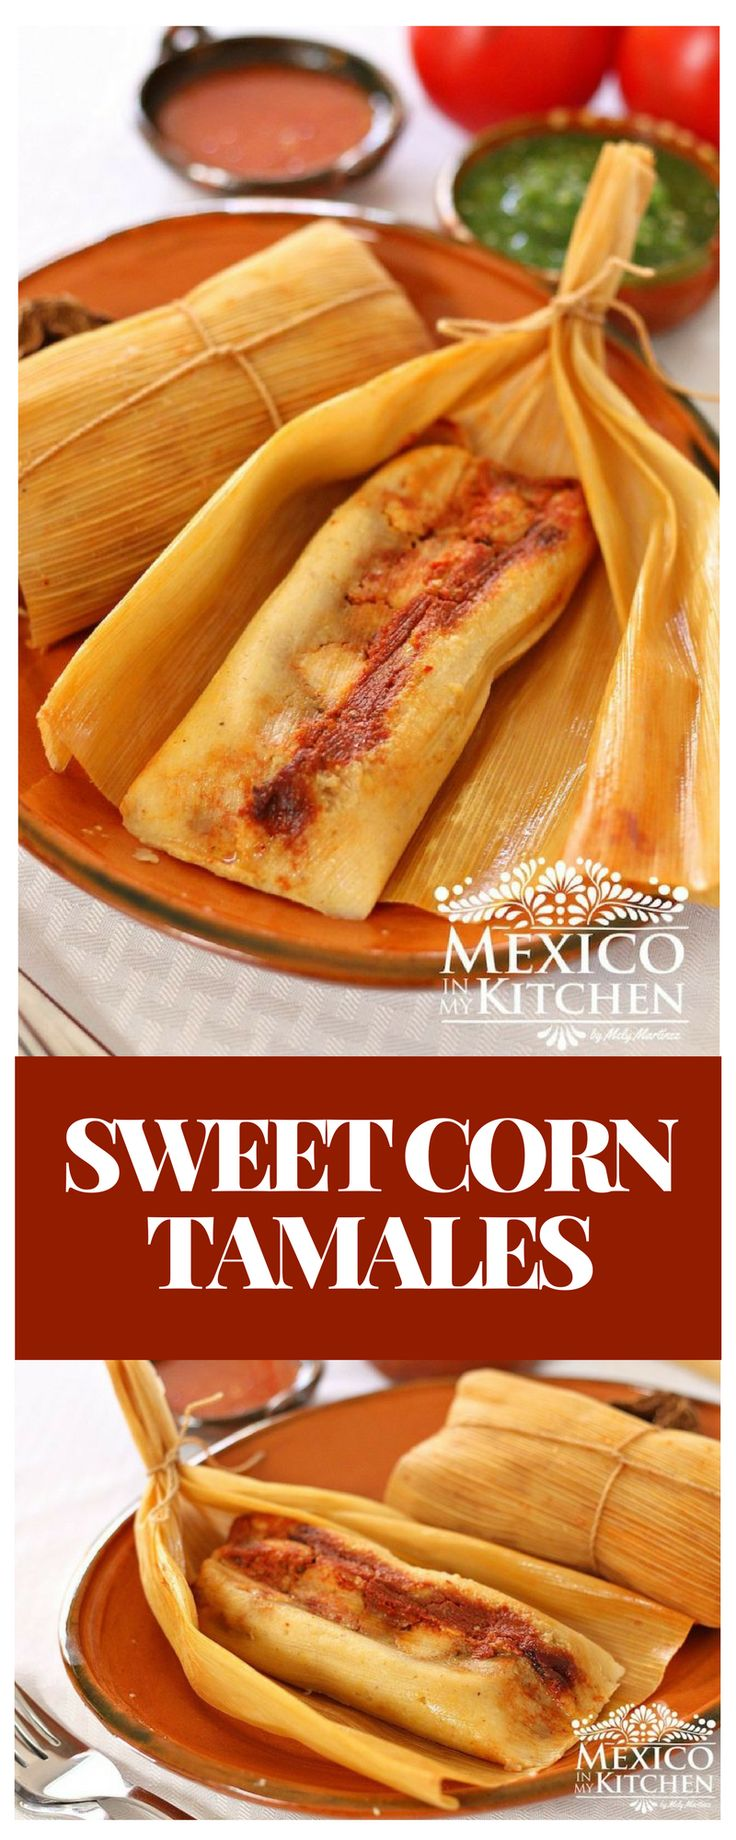 These Savory/Sweet Corn Tamales are from the southern region of the state of Veracruz. I found out about them while living in the city of Coatzacoalcos, a coastal town famous for its oil refineries, as well as for being the hometown of the famous Mexican actress Salma Hayek. #recipe #mexican #food #pork #tamales